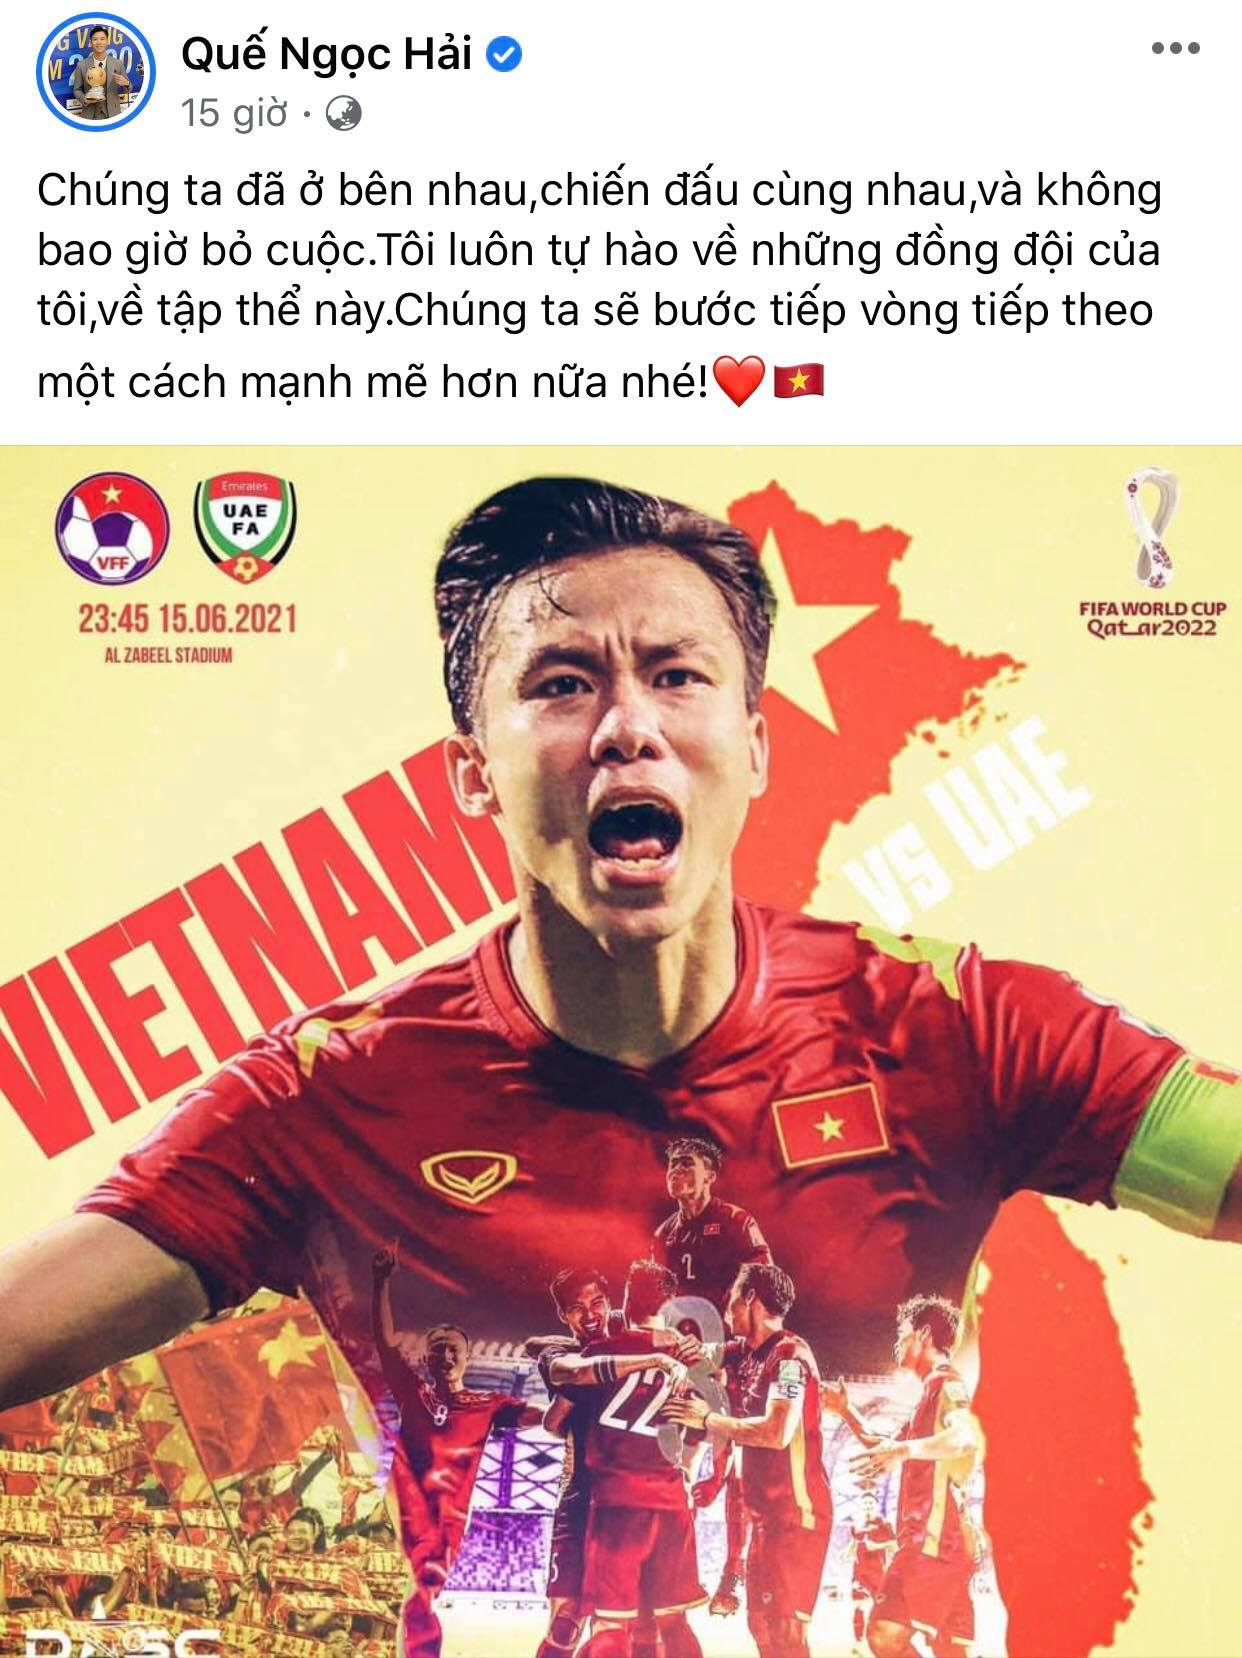 Captain Que Ngoc Hai expressed pride when fighting with his teammates.